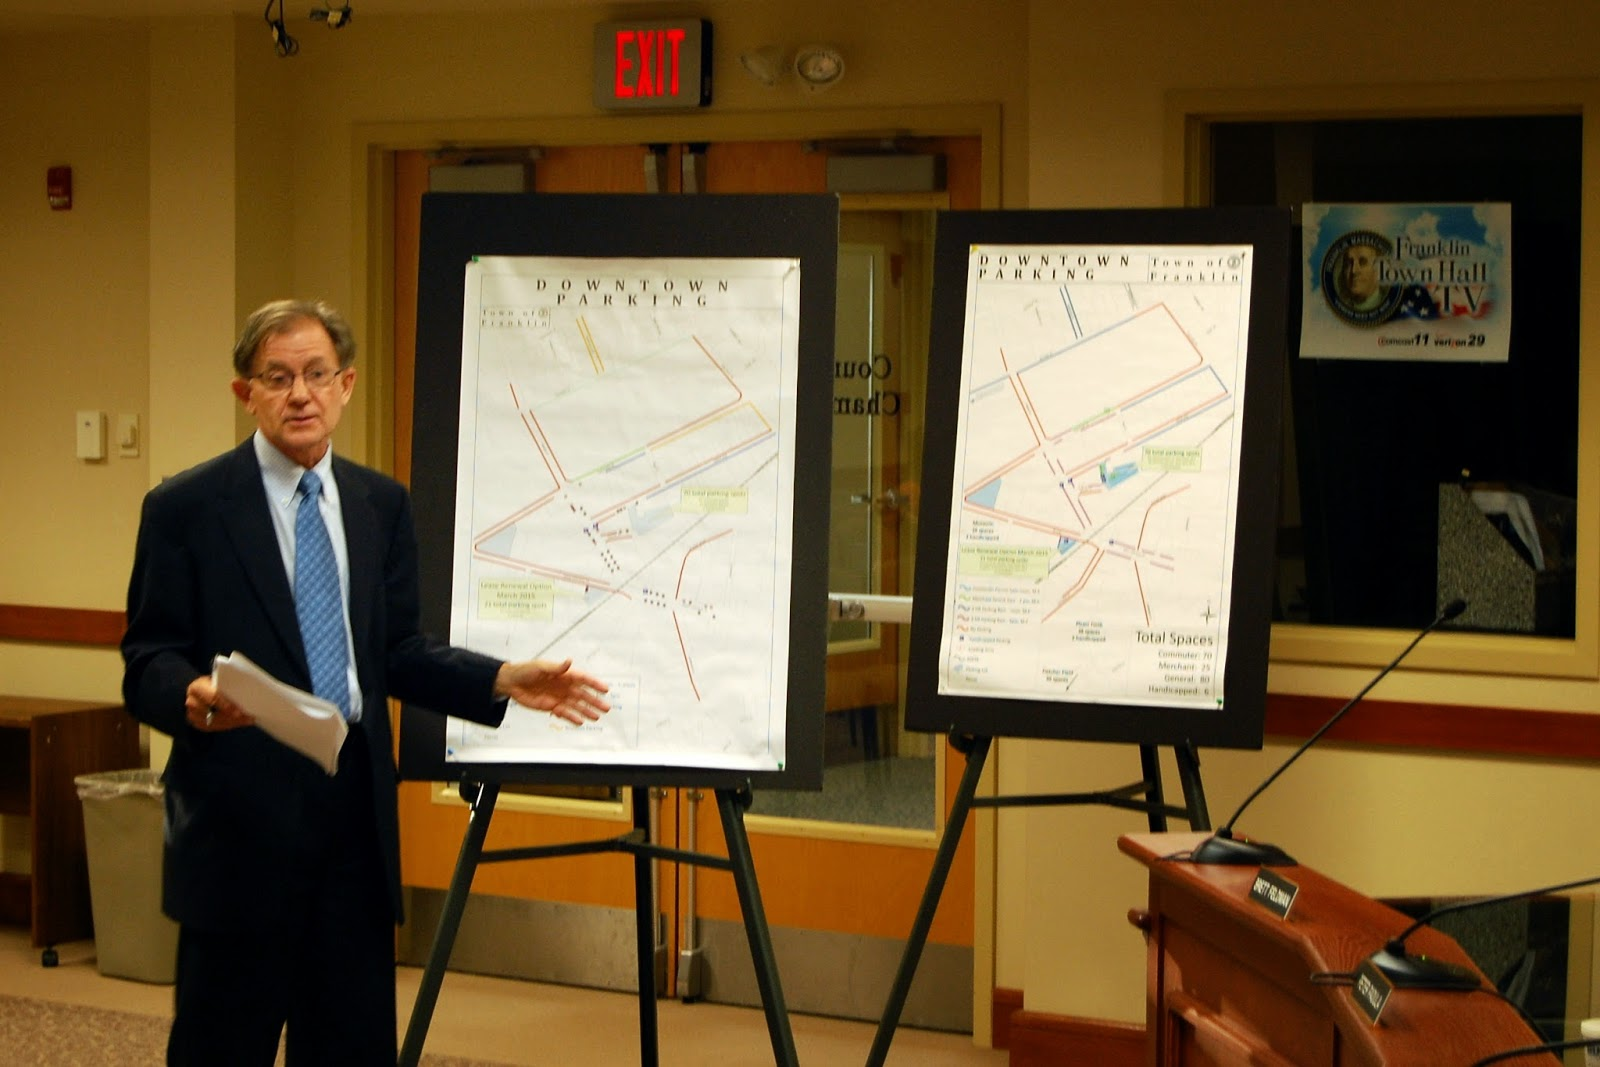 Town Administrator Jeff Nutting discussing the parking proposal